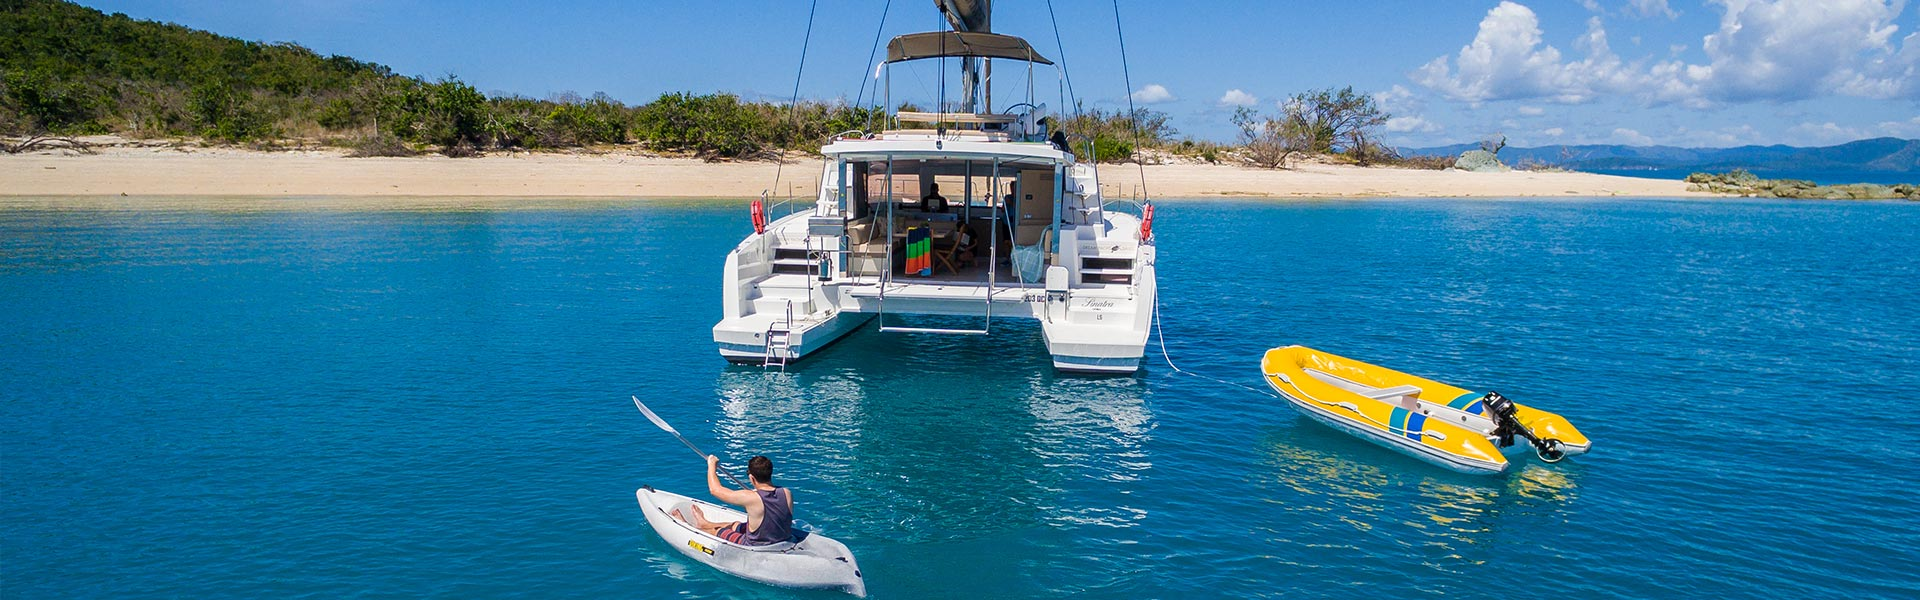 Yacht Charter in the Whitsundays